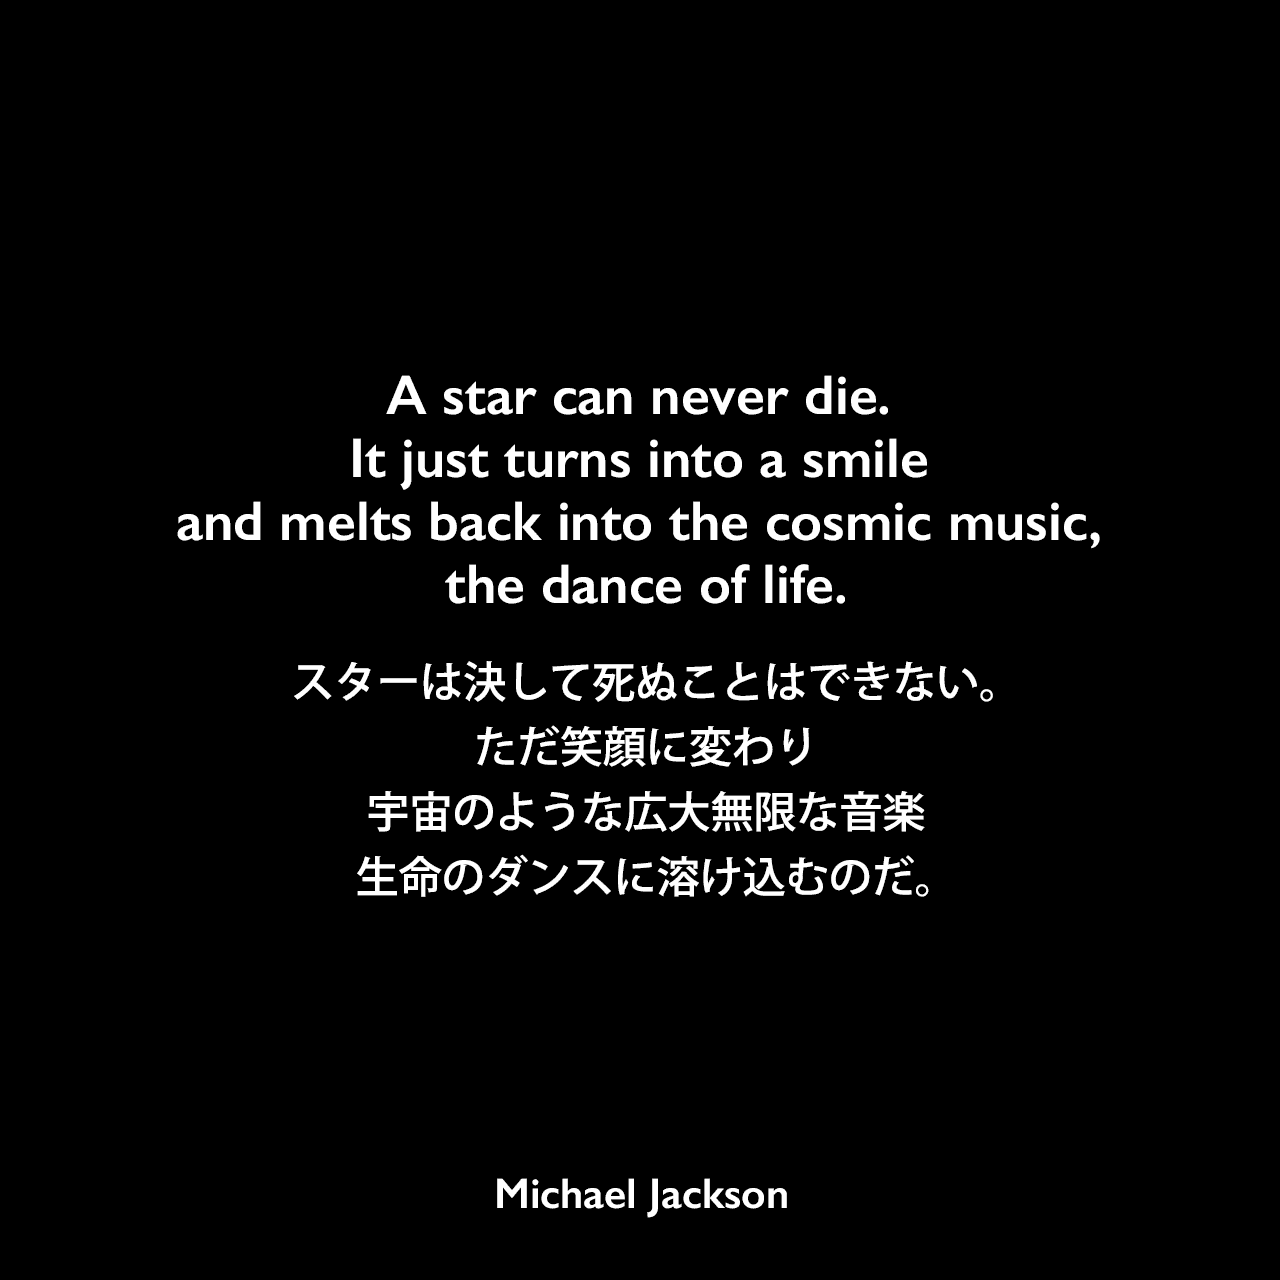 A star can never die. It just turns into a smile and melts back into the cosmic music, the dance of life.スターは決して死ぬことはできない。ただ笑顔に変わり、宇宙のような広大無限な音楽、生命のダンスに溶け込むのだ。Michael Jackson